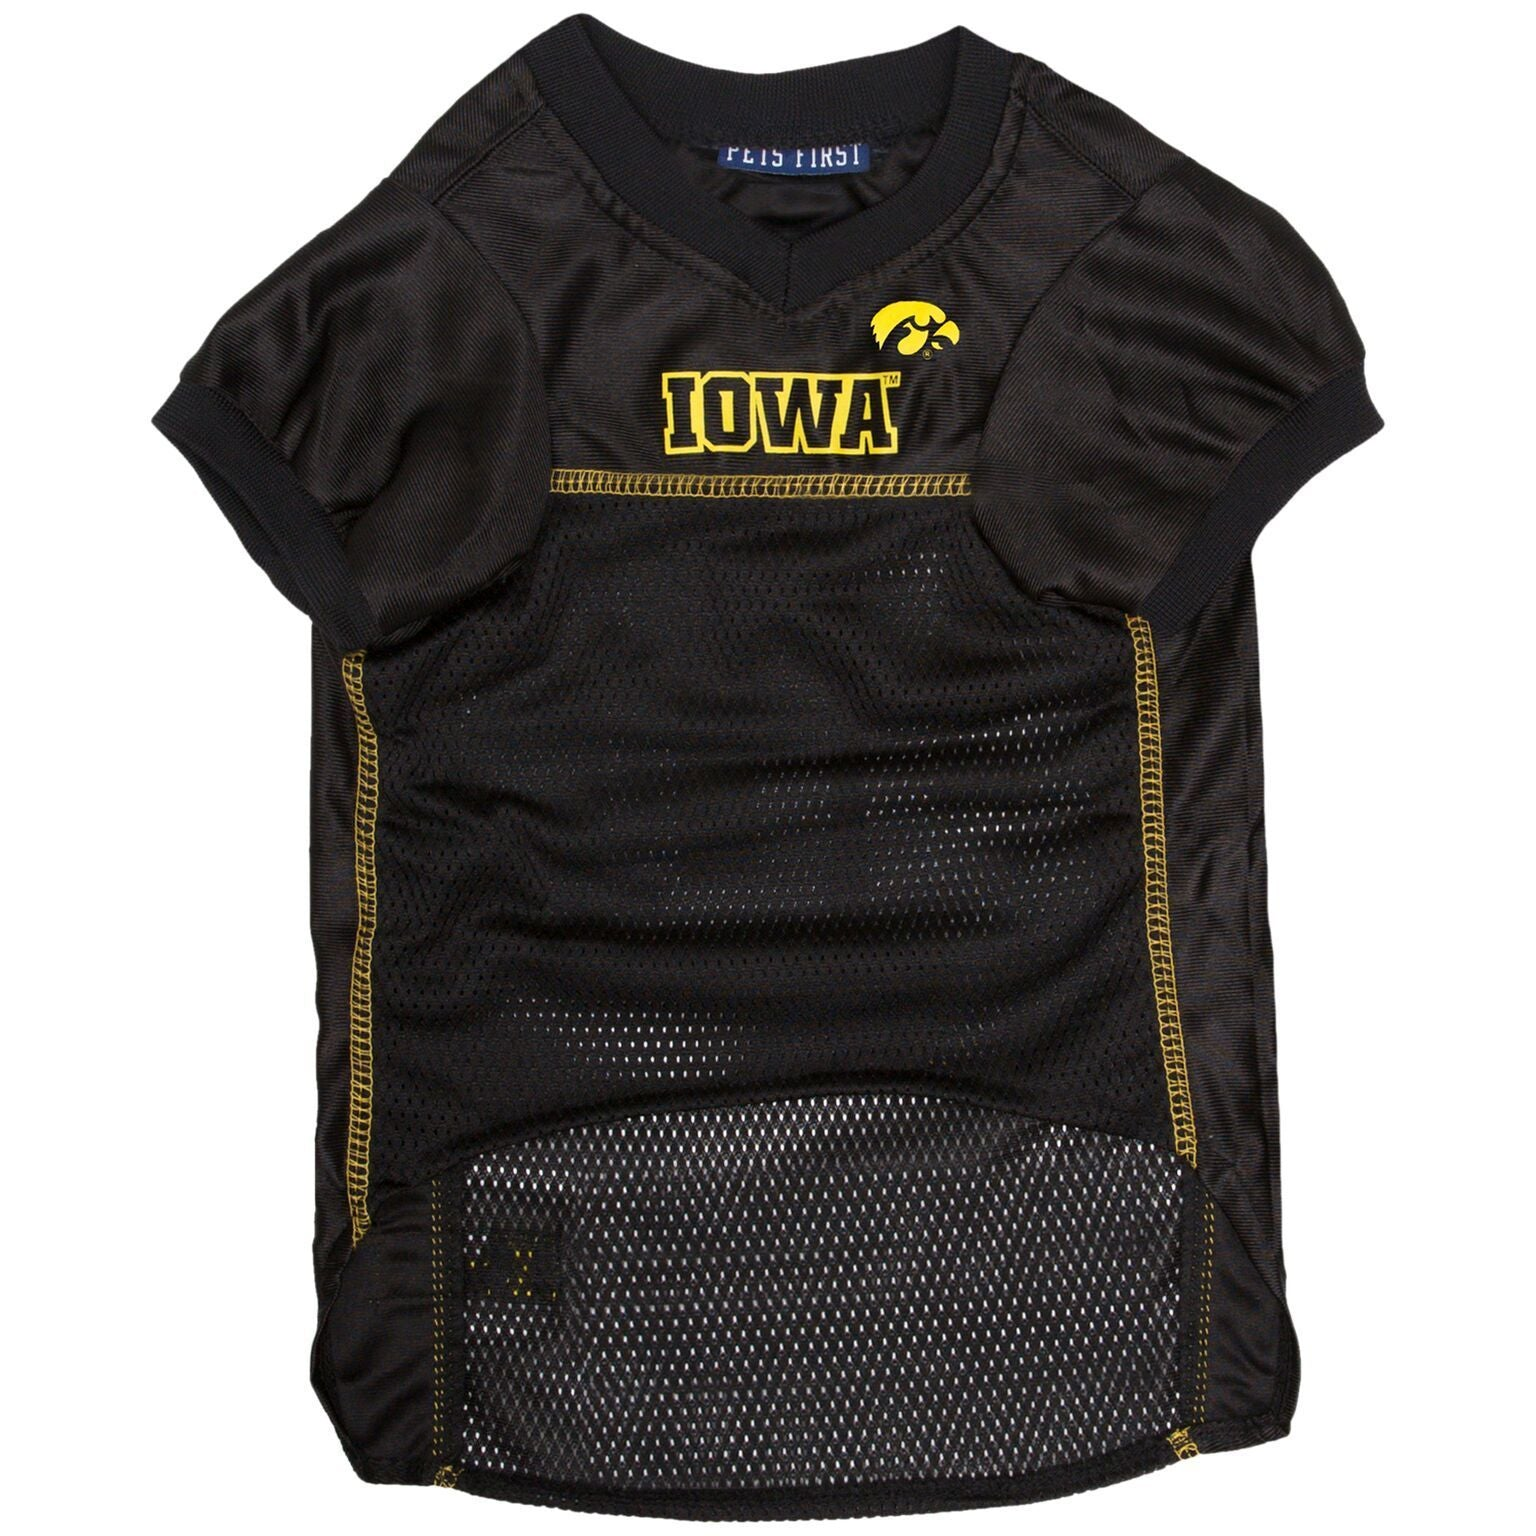 Iowa Hawkeye Football Dog Jerseys